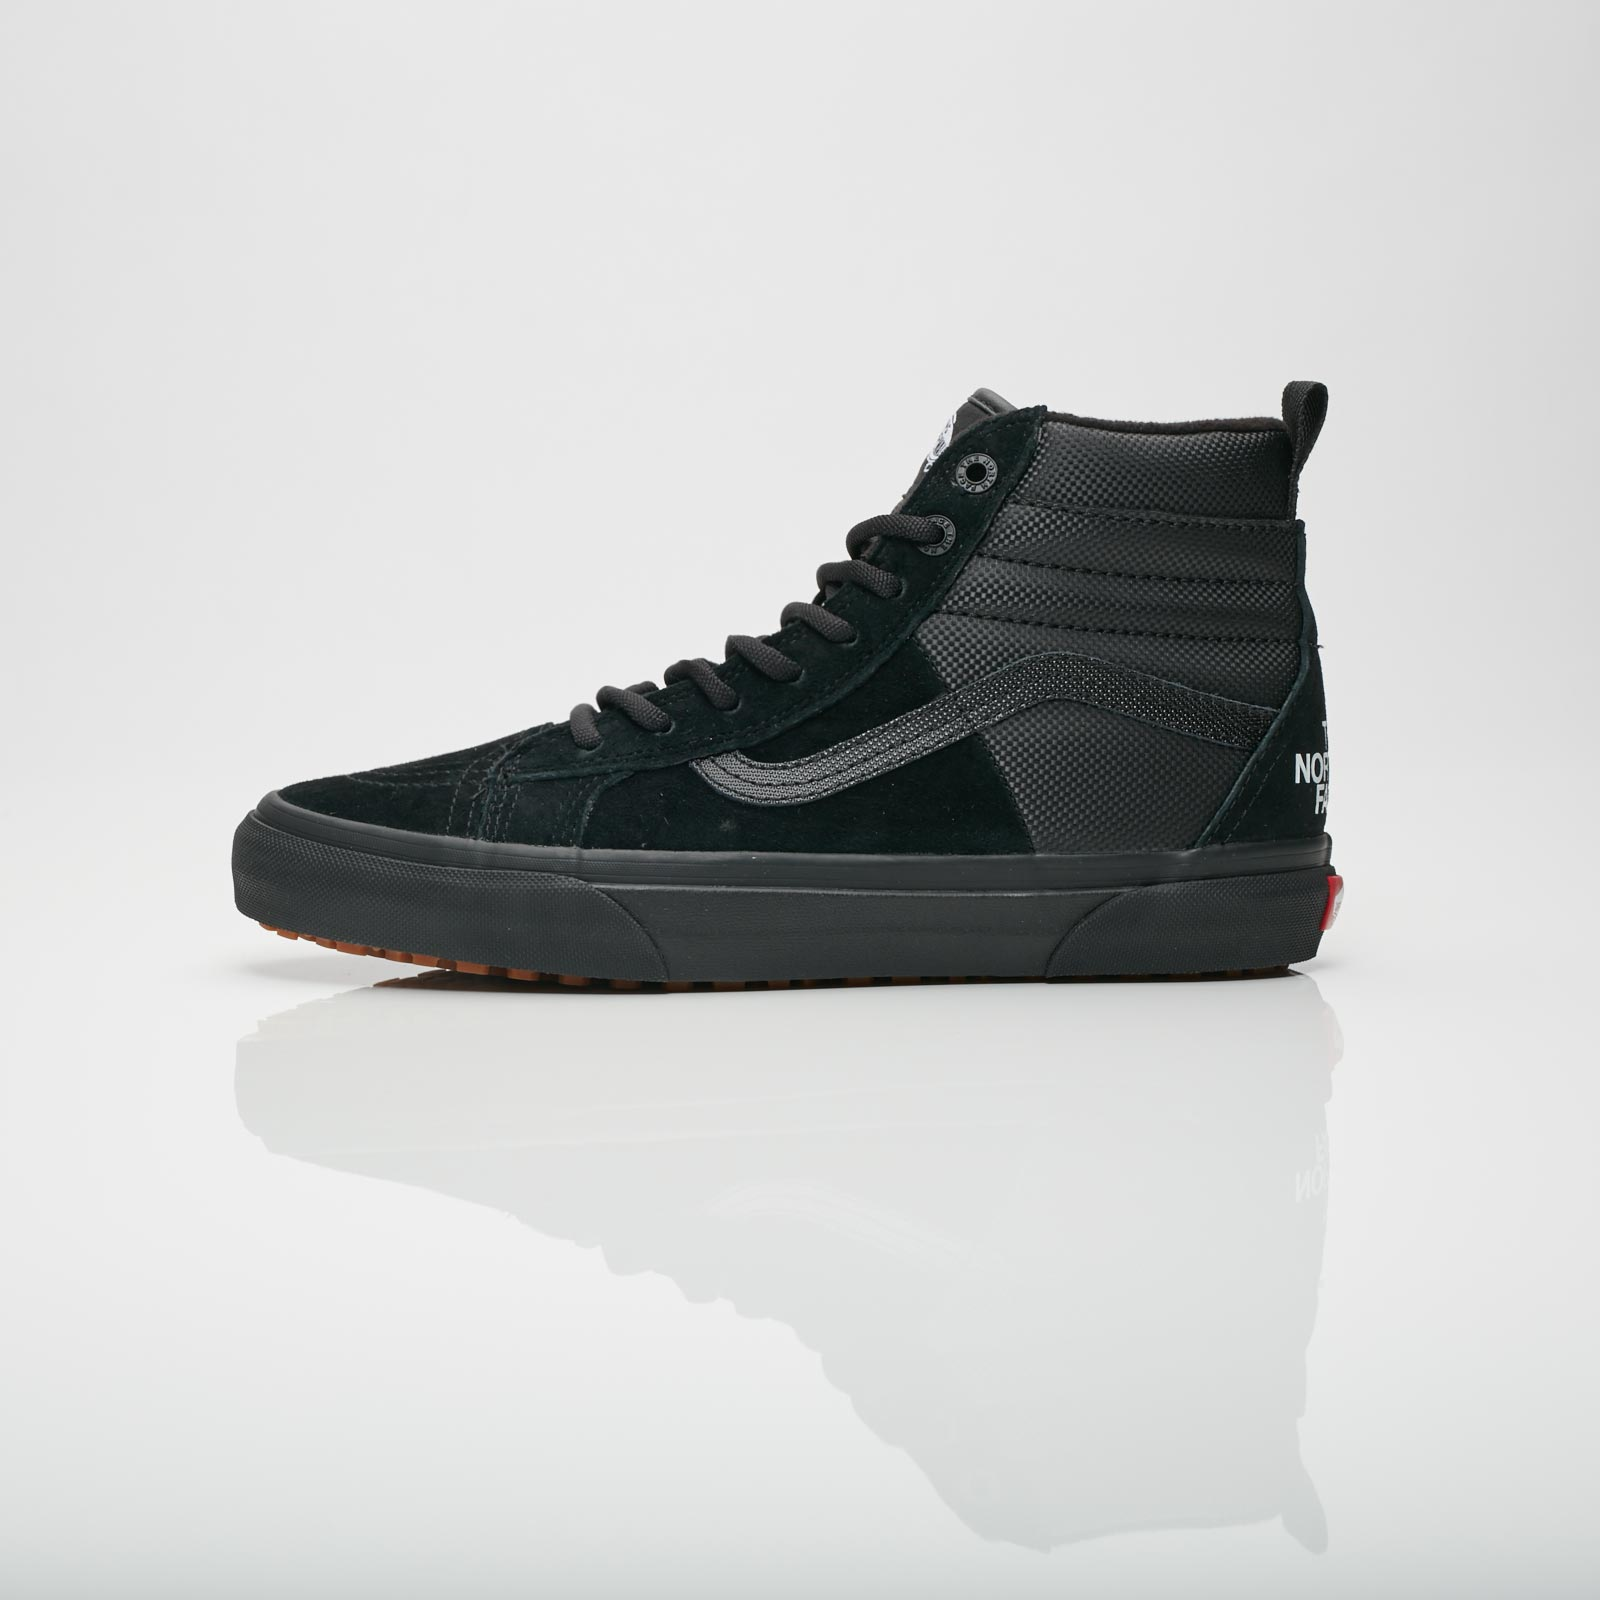 Vans Sk8 Hi 46 MTE DX x The North Face Vn0a3dq5qwr